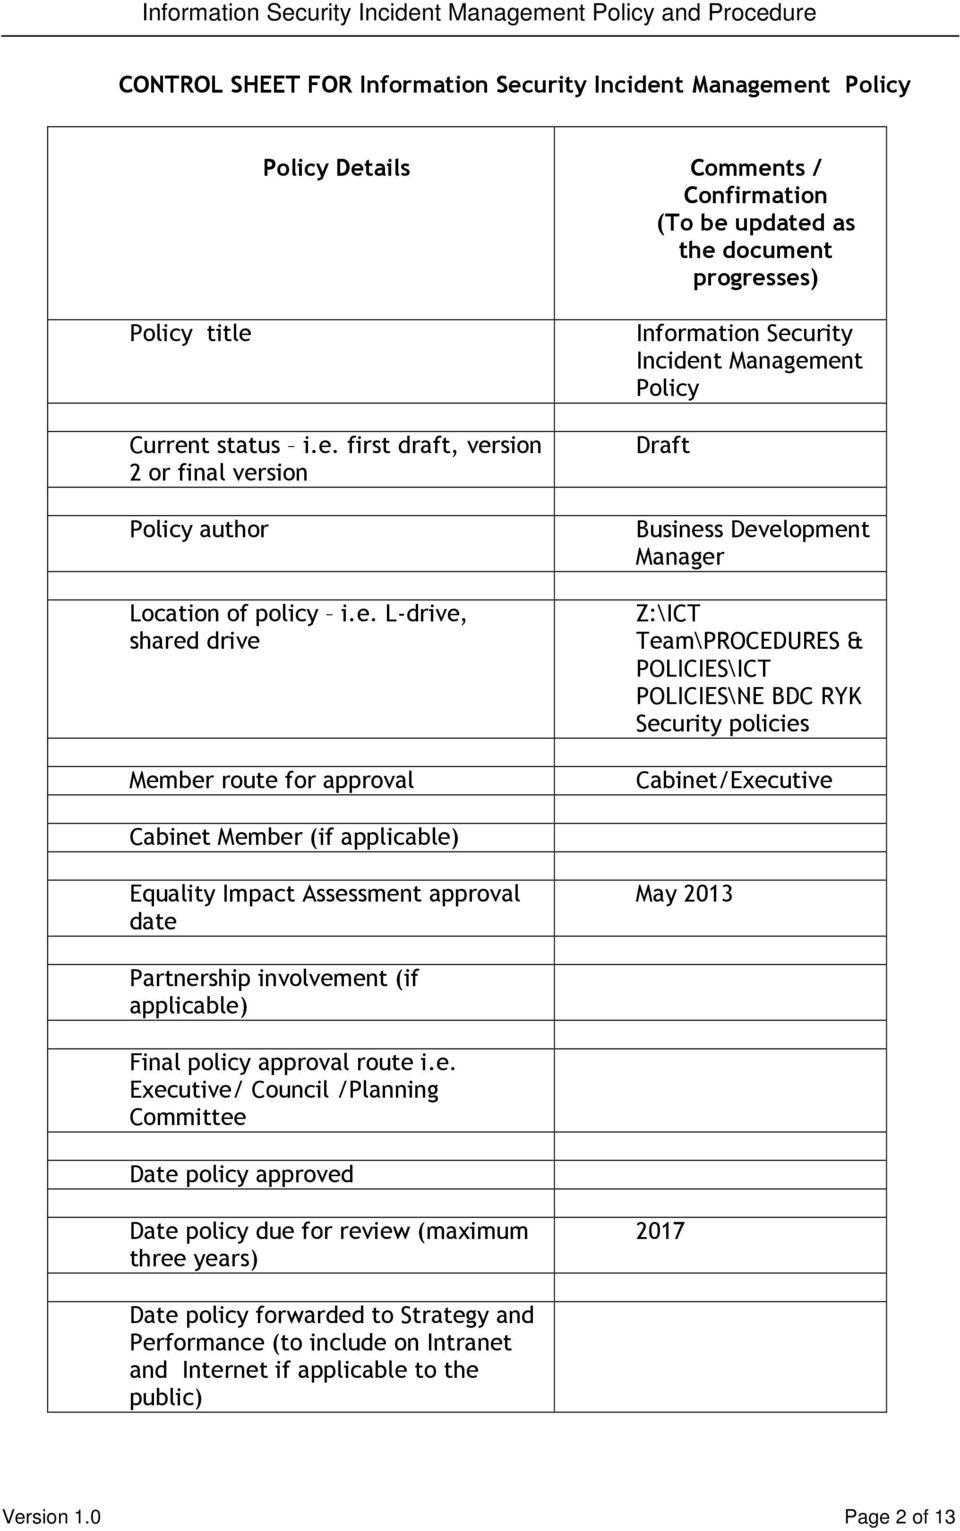 Security policies Cabinet/Executive Cabinet Member (if applicable) Equality Impact Assessment approval date May 2013 Partnership involvement (if applicable) Final policy approval route i.e.